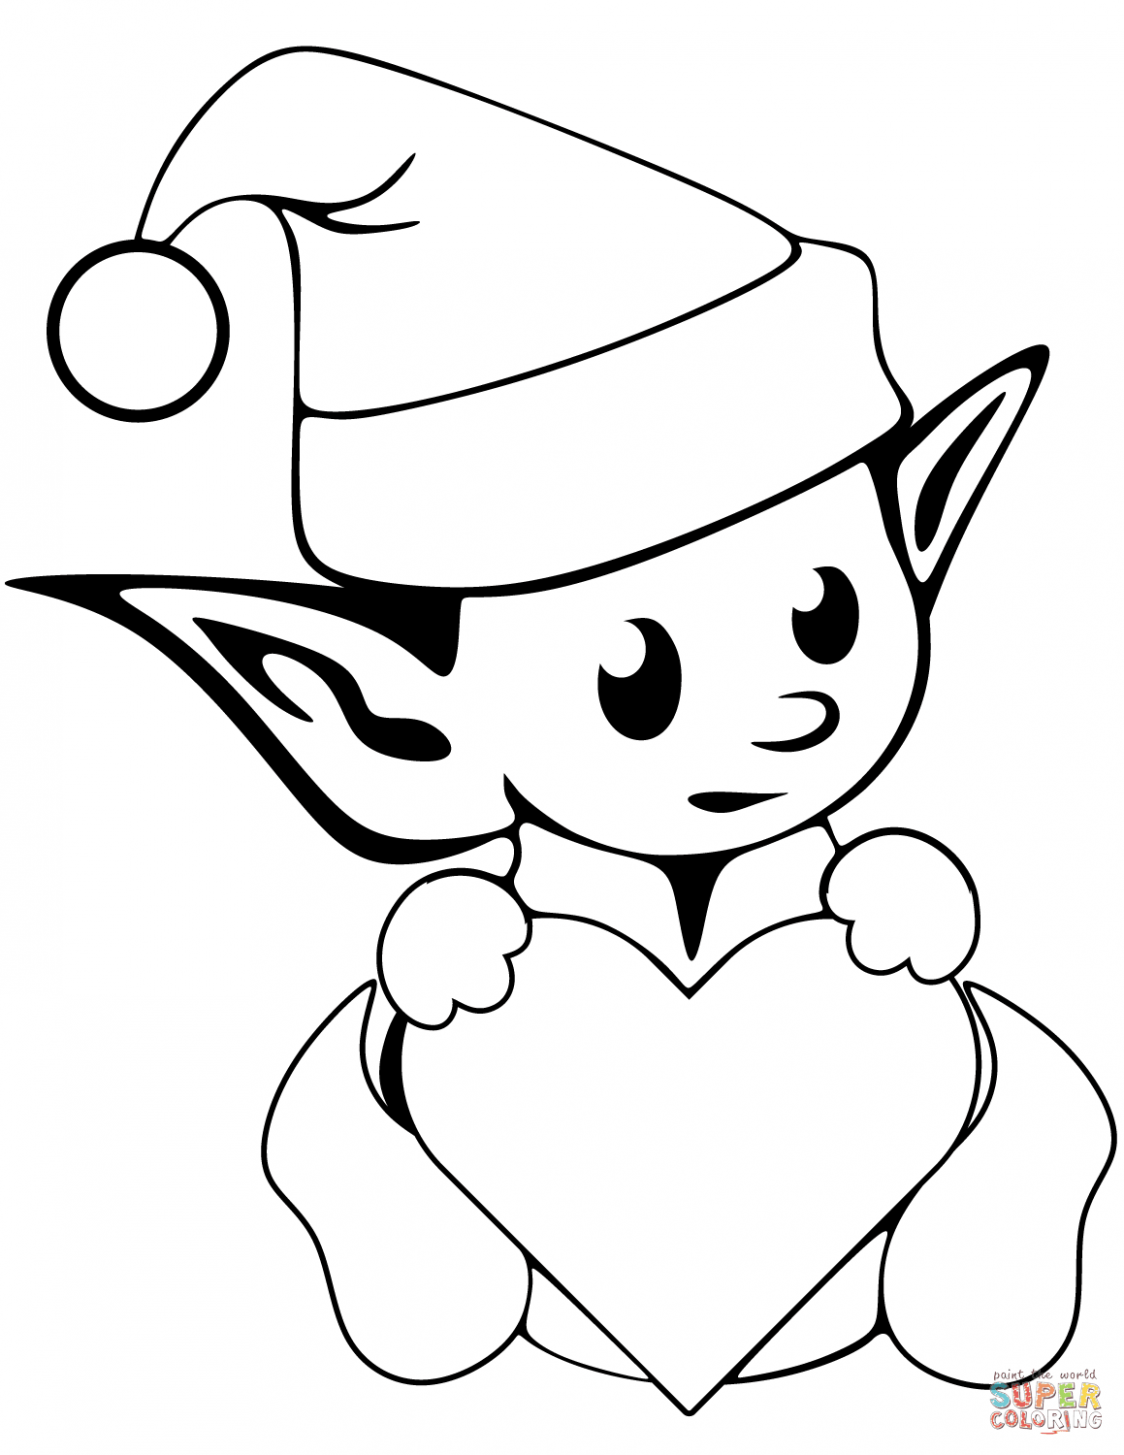 Coloring Ideas : Cute Christmas Elf Coloring Page Elves Pages Free ..